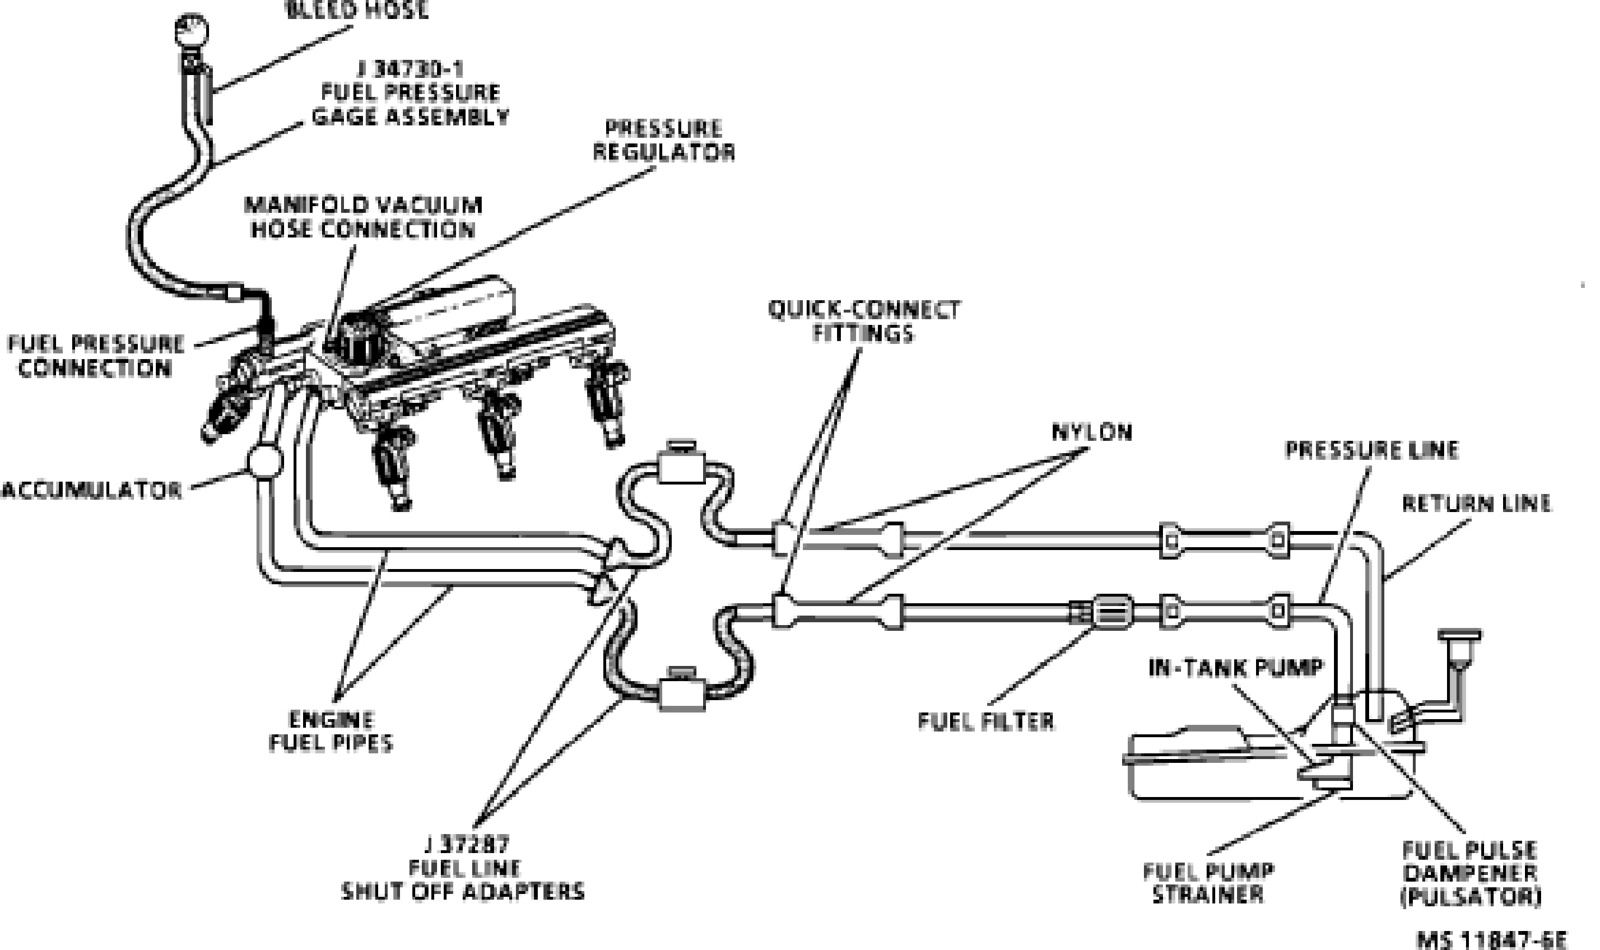 gmc sierra fuel pump wiring diagram wiring diagram chevy fuel pressure regulator location 1990 gmc sierra fuel pump wiring diagram